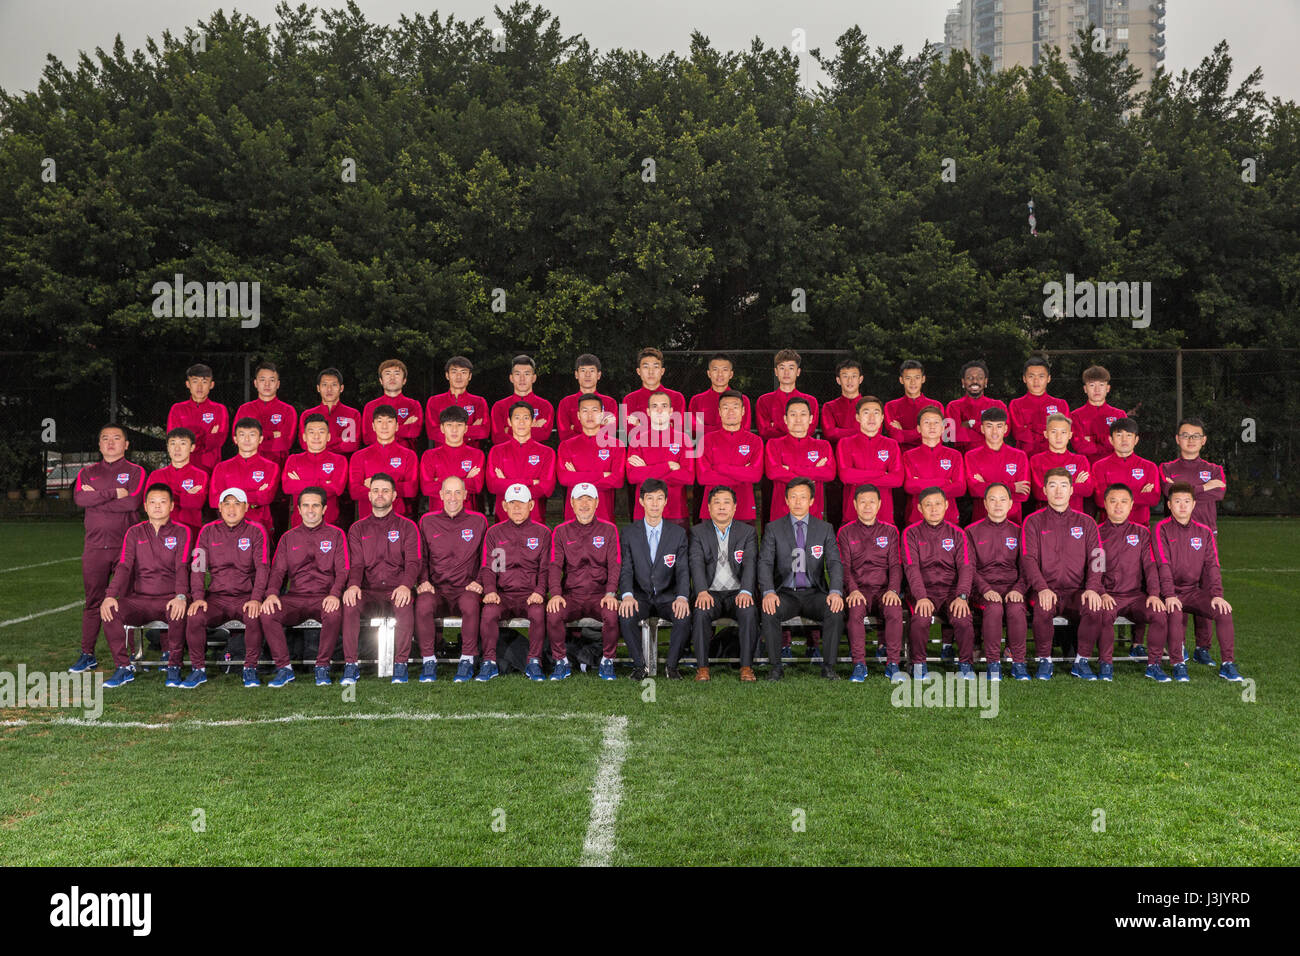 966f0b12d Group shot of players of Chongqing Dangdai Lifan F.C. for the 2017 Chinese  Football Association Super League